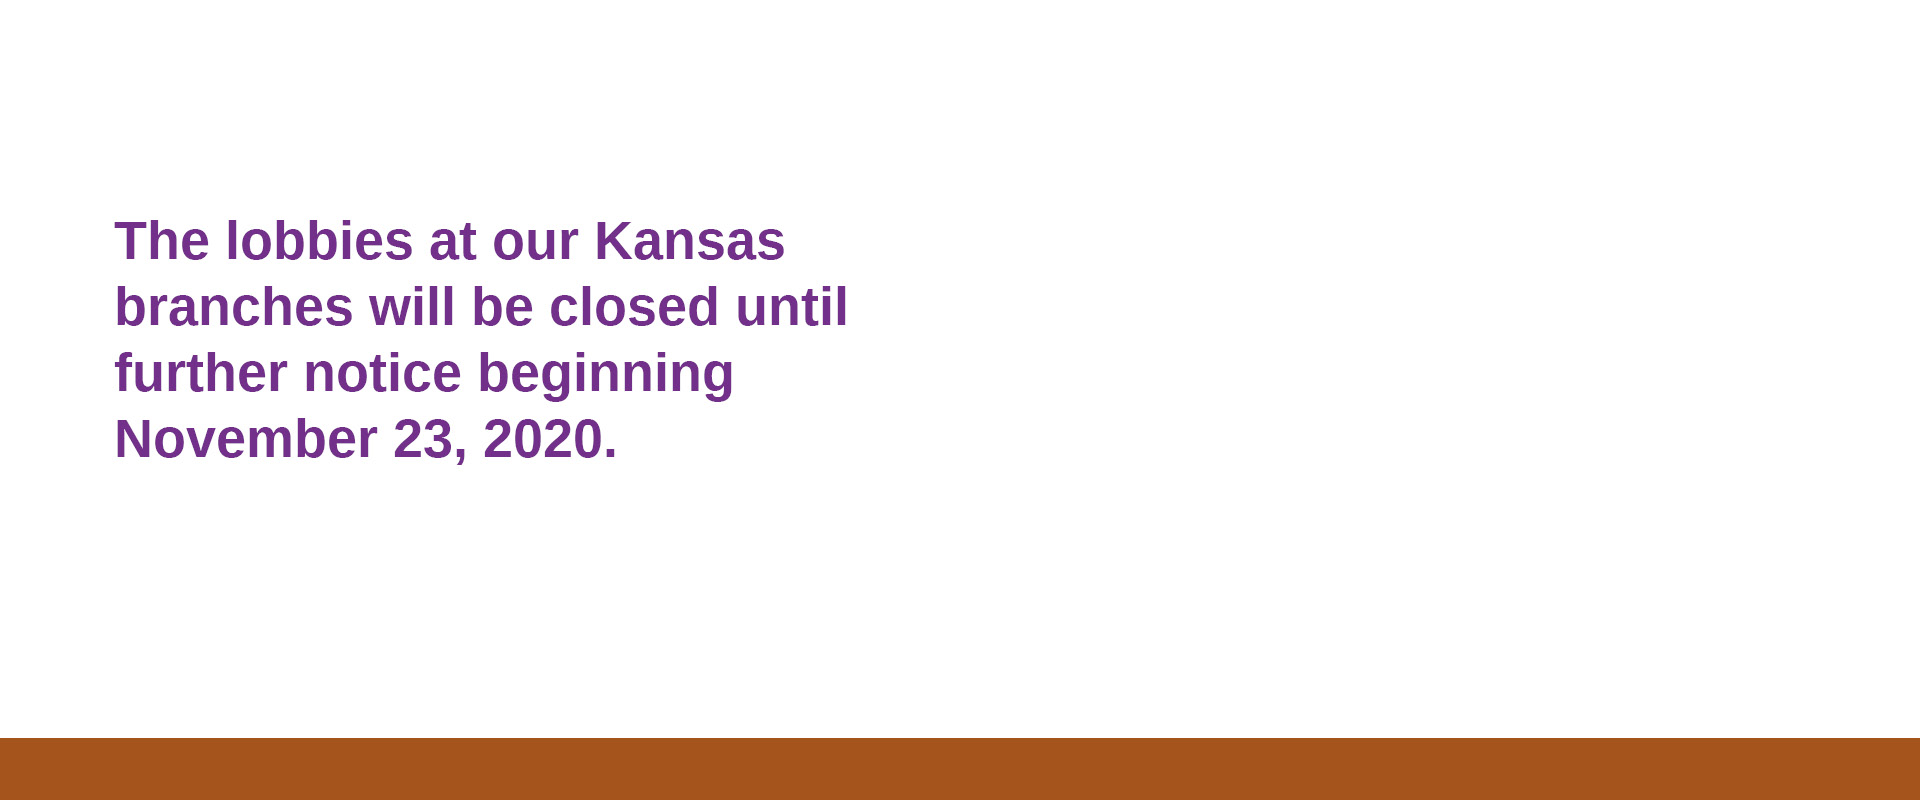 The lobbies at our Kansas branches will be closed until further notice beginning November 23, 2020.